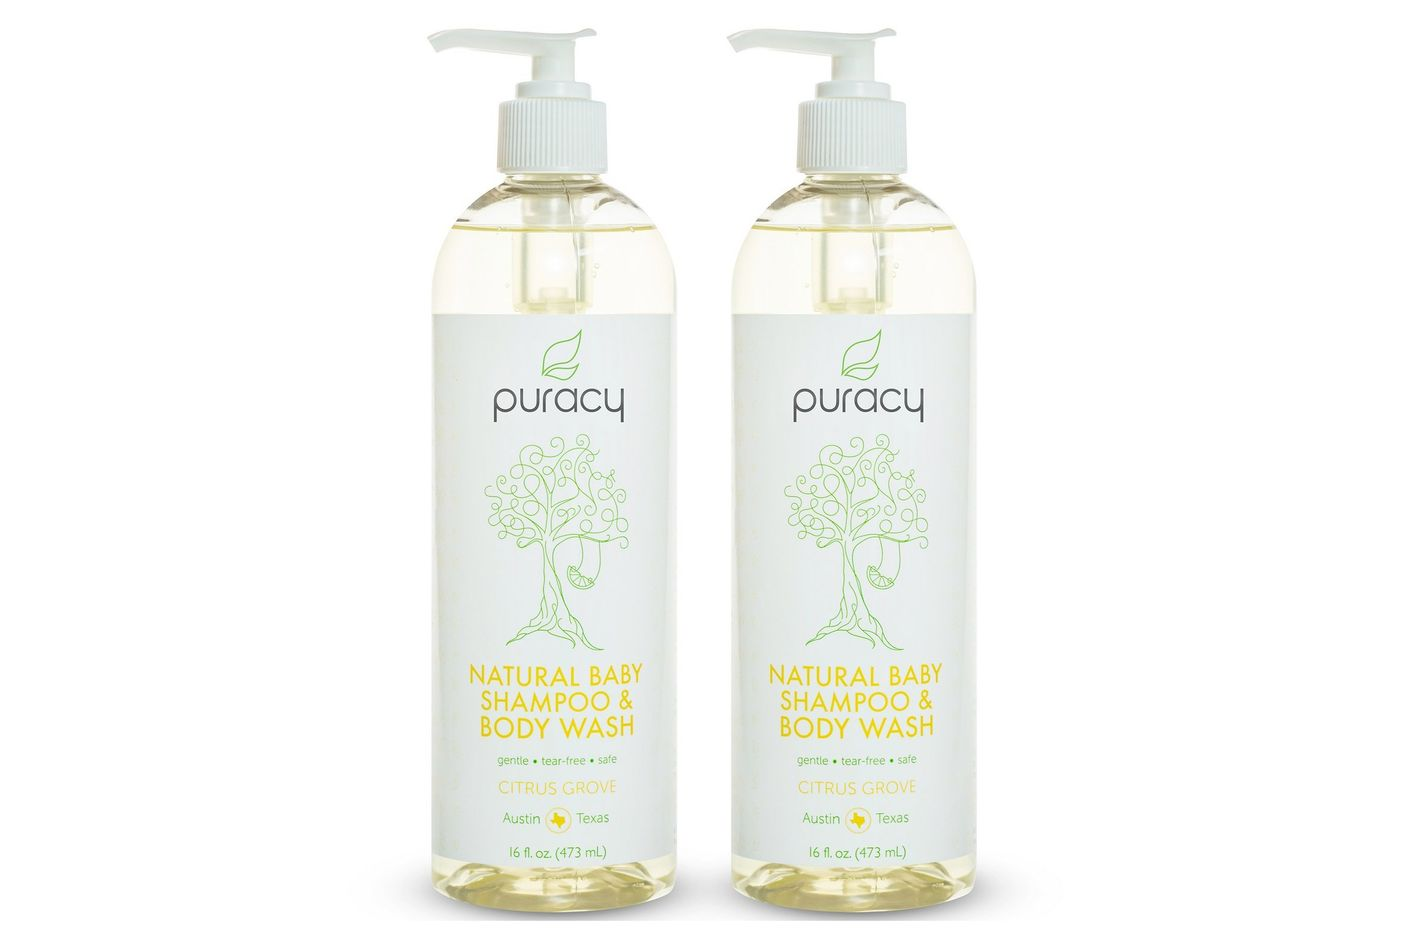 Puracy Natural Baby Shampoo & Body Wash, 2-Pack